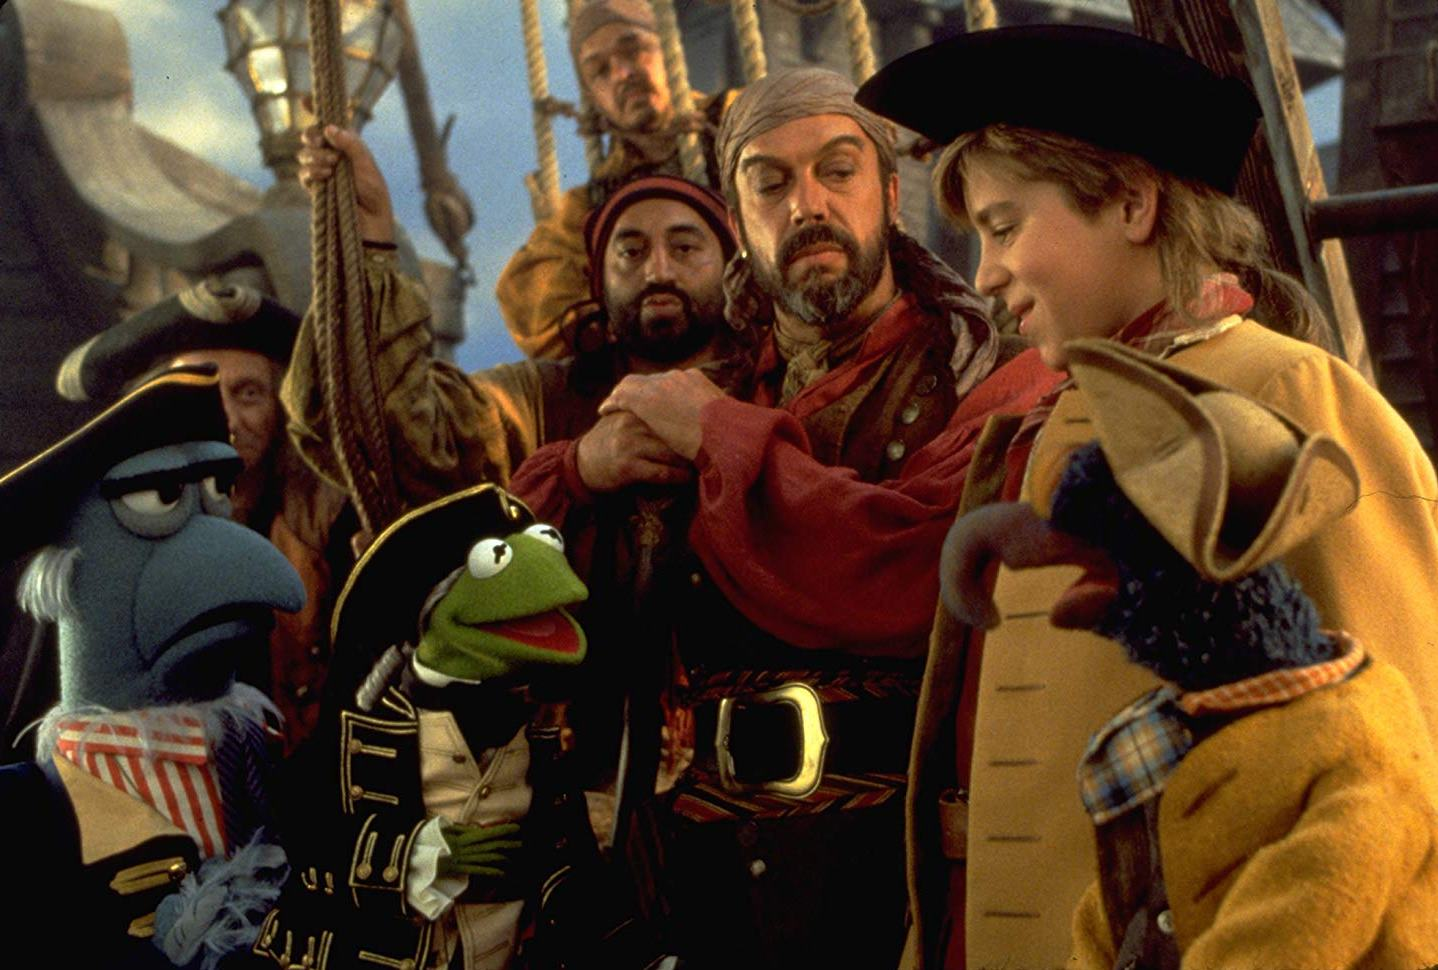 The Muppets with Long John Silver (Tim Curry) and Jim Hawkins (Kevin Bishop) in Muppet Treasure Island (1996)